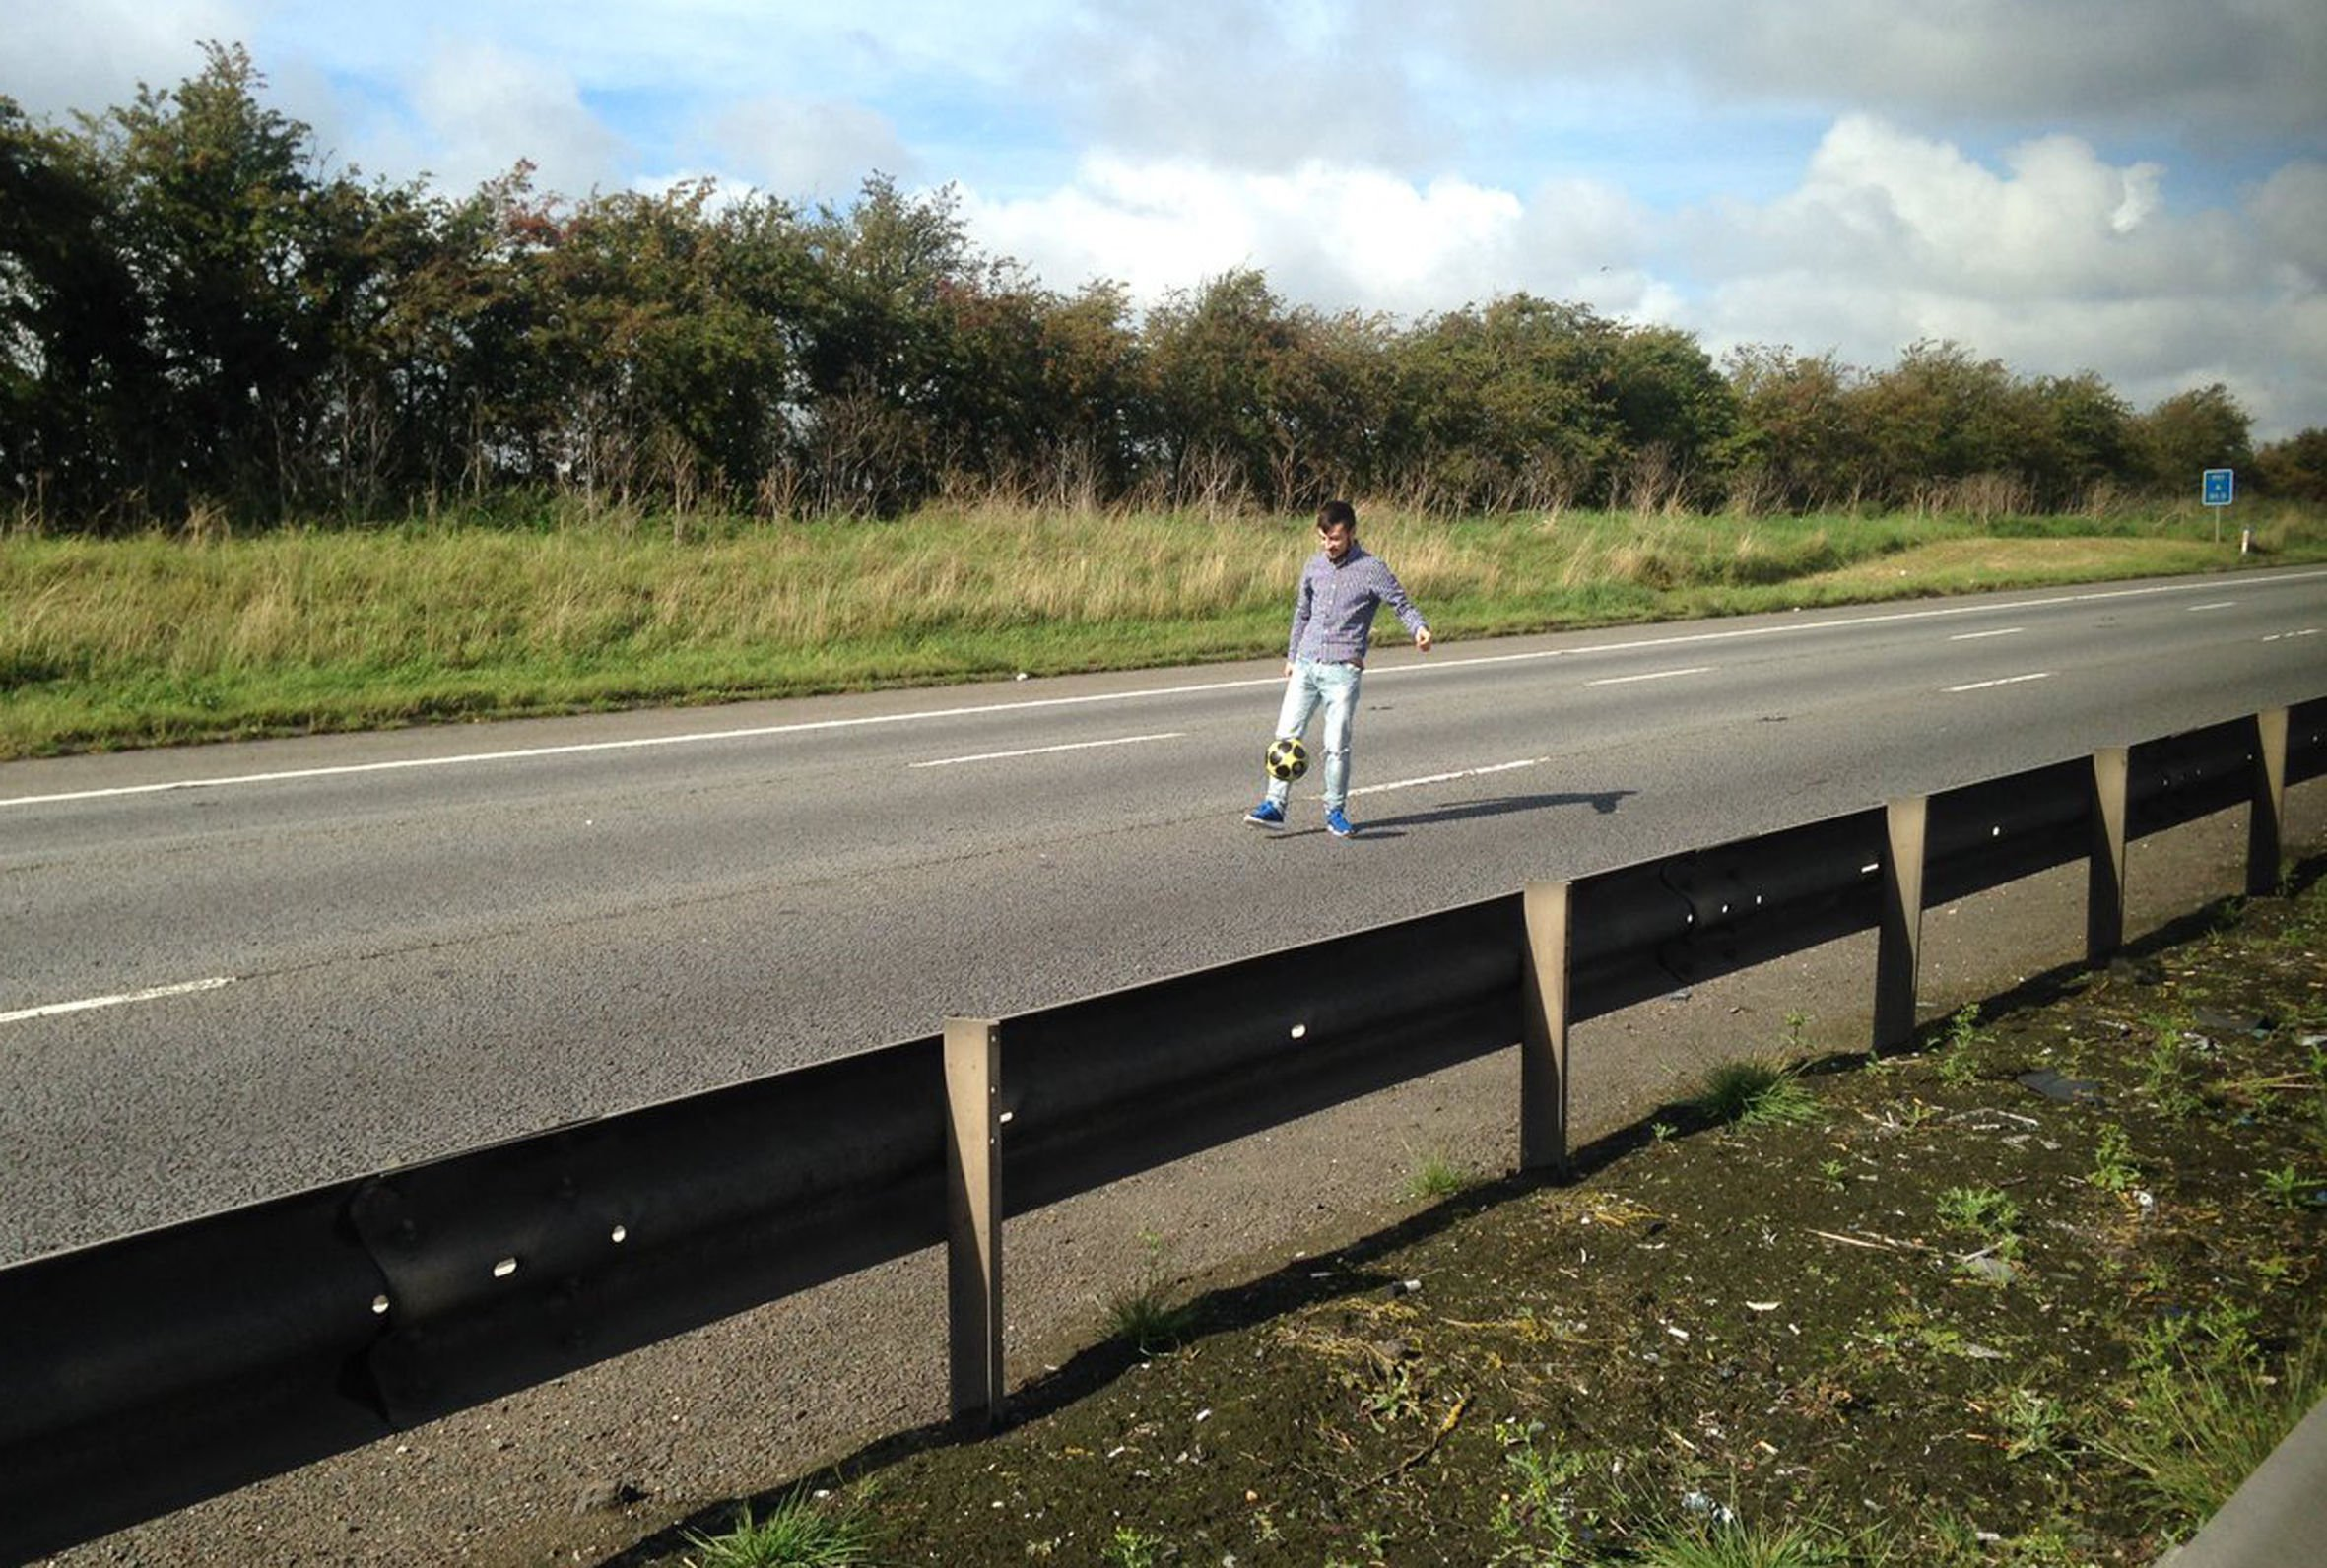 Frustrated drivers play football and frisbee on M1 while stuck in traffic